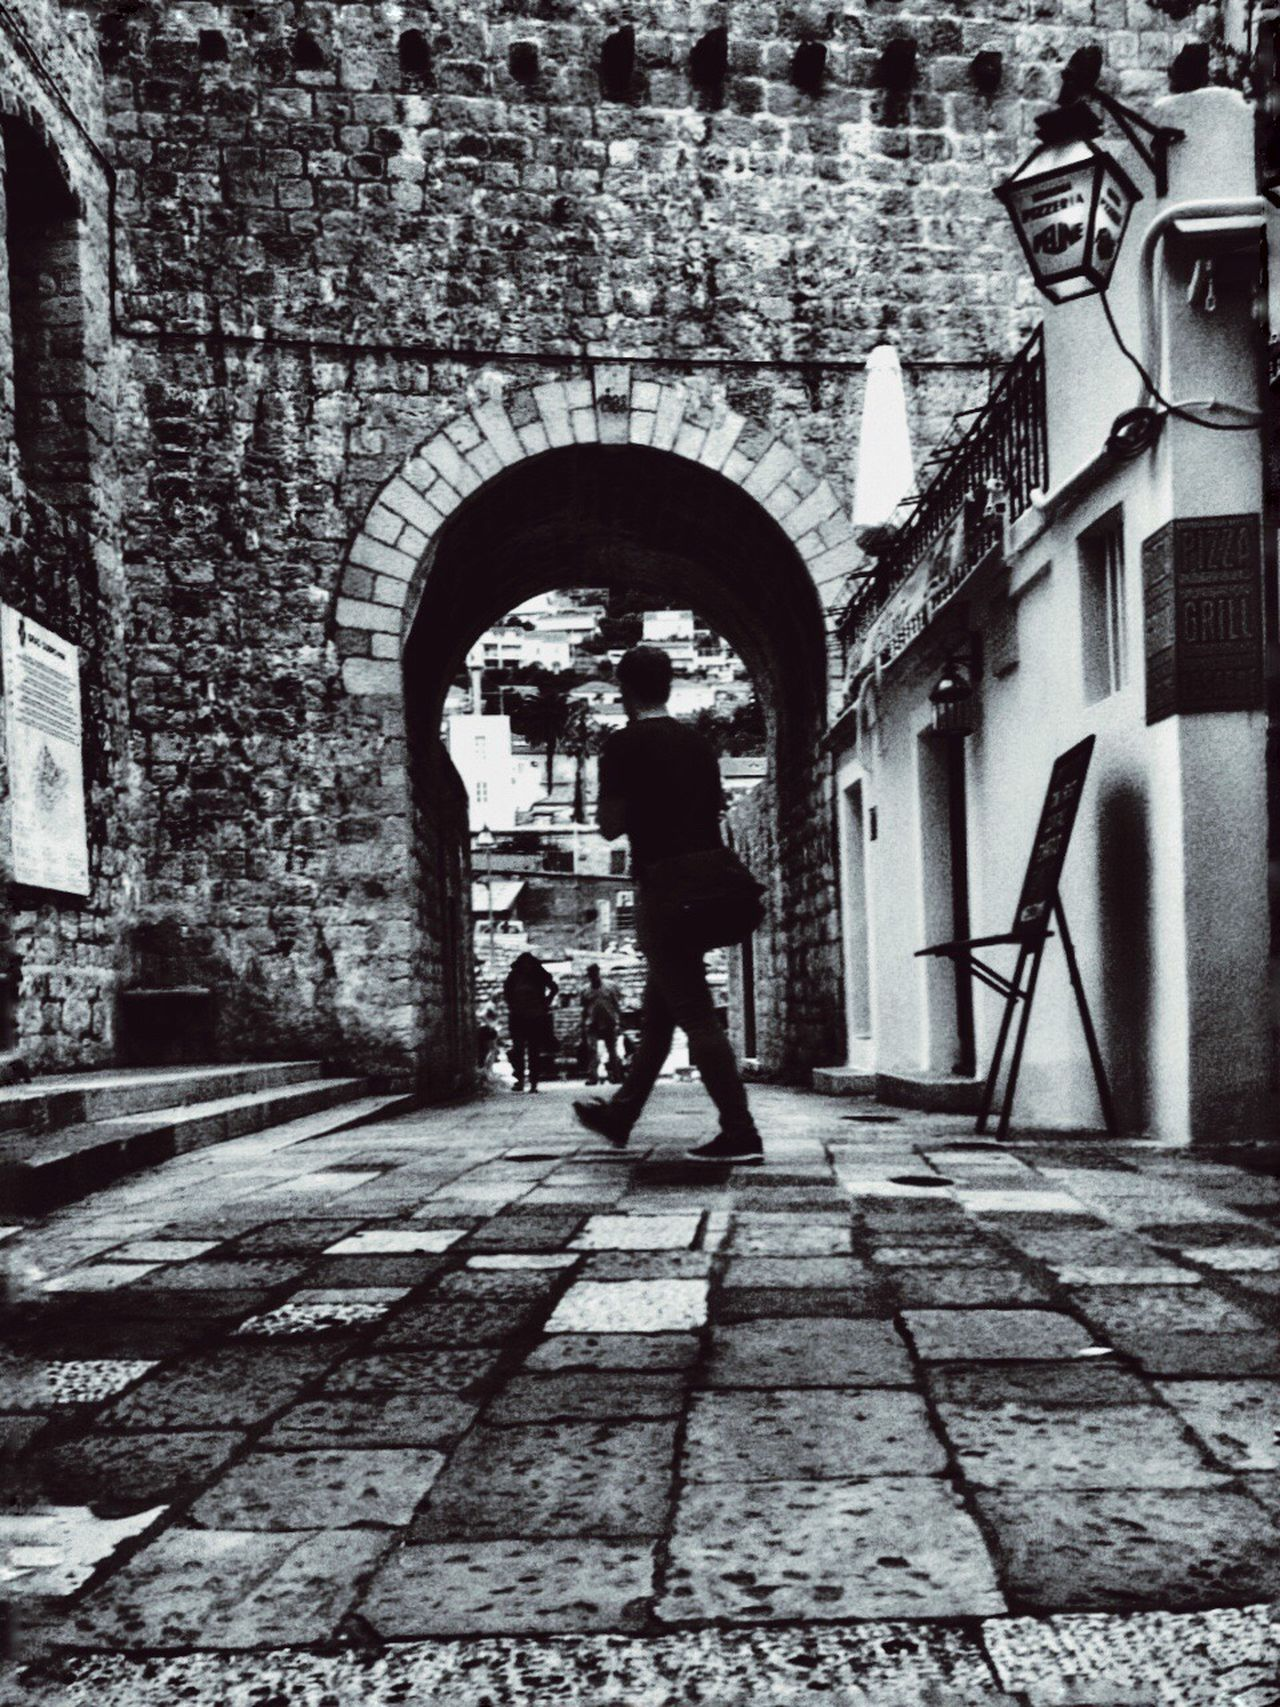 Croatia Dubrovnik Dubrovnik, Croatia Dubrovnik - Croatia❤ IPhone IPhoneography Iphoneonly IPhone Photography Travel Travel Photography Superciaowei Upclose Street Photography Black&white Blackandwhite Photography Blackandwhitephotography Black And White Photography Black & White Iphonephotography Black And White Blackandwhite Blacknwhite The Street Photographer - 2016 EyeEm Awards 2016 EyeEm Awards The Great Outdoors - 2016 EyeEm Awards Original Experiences